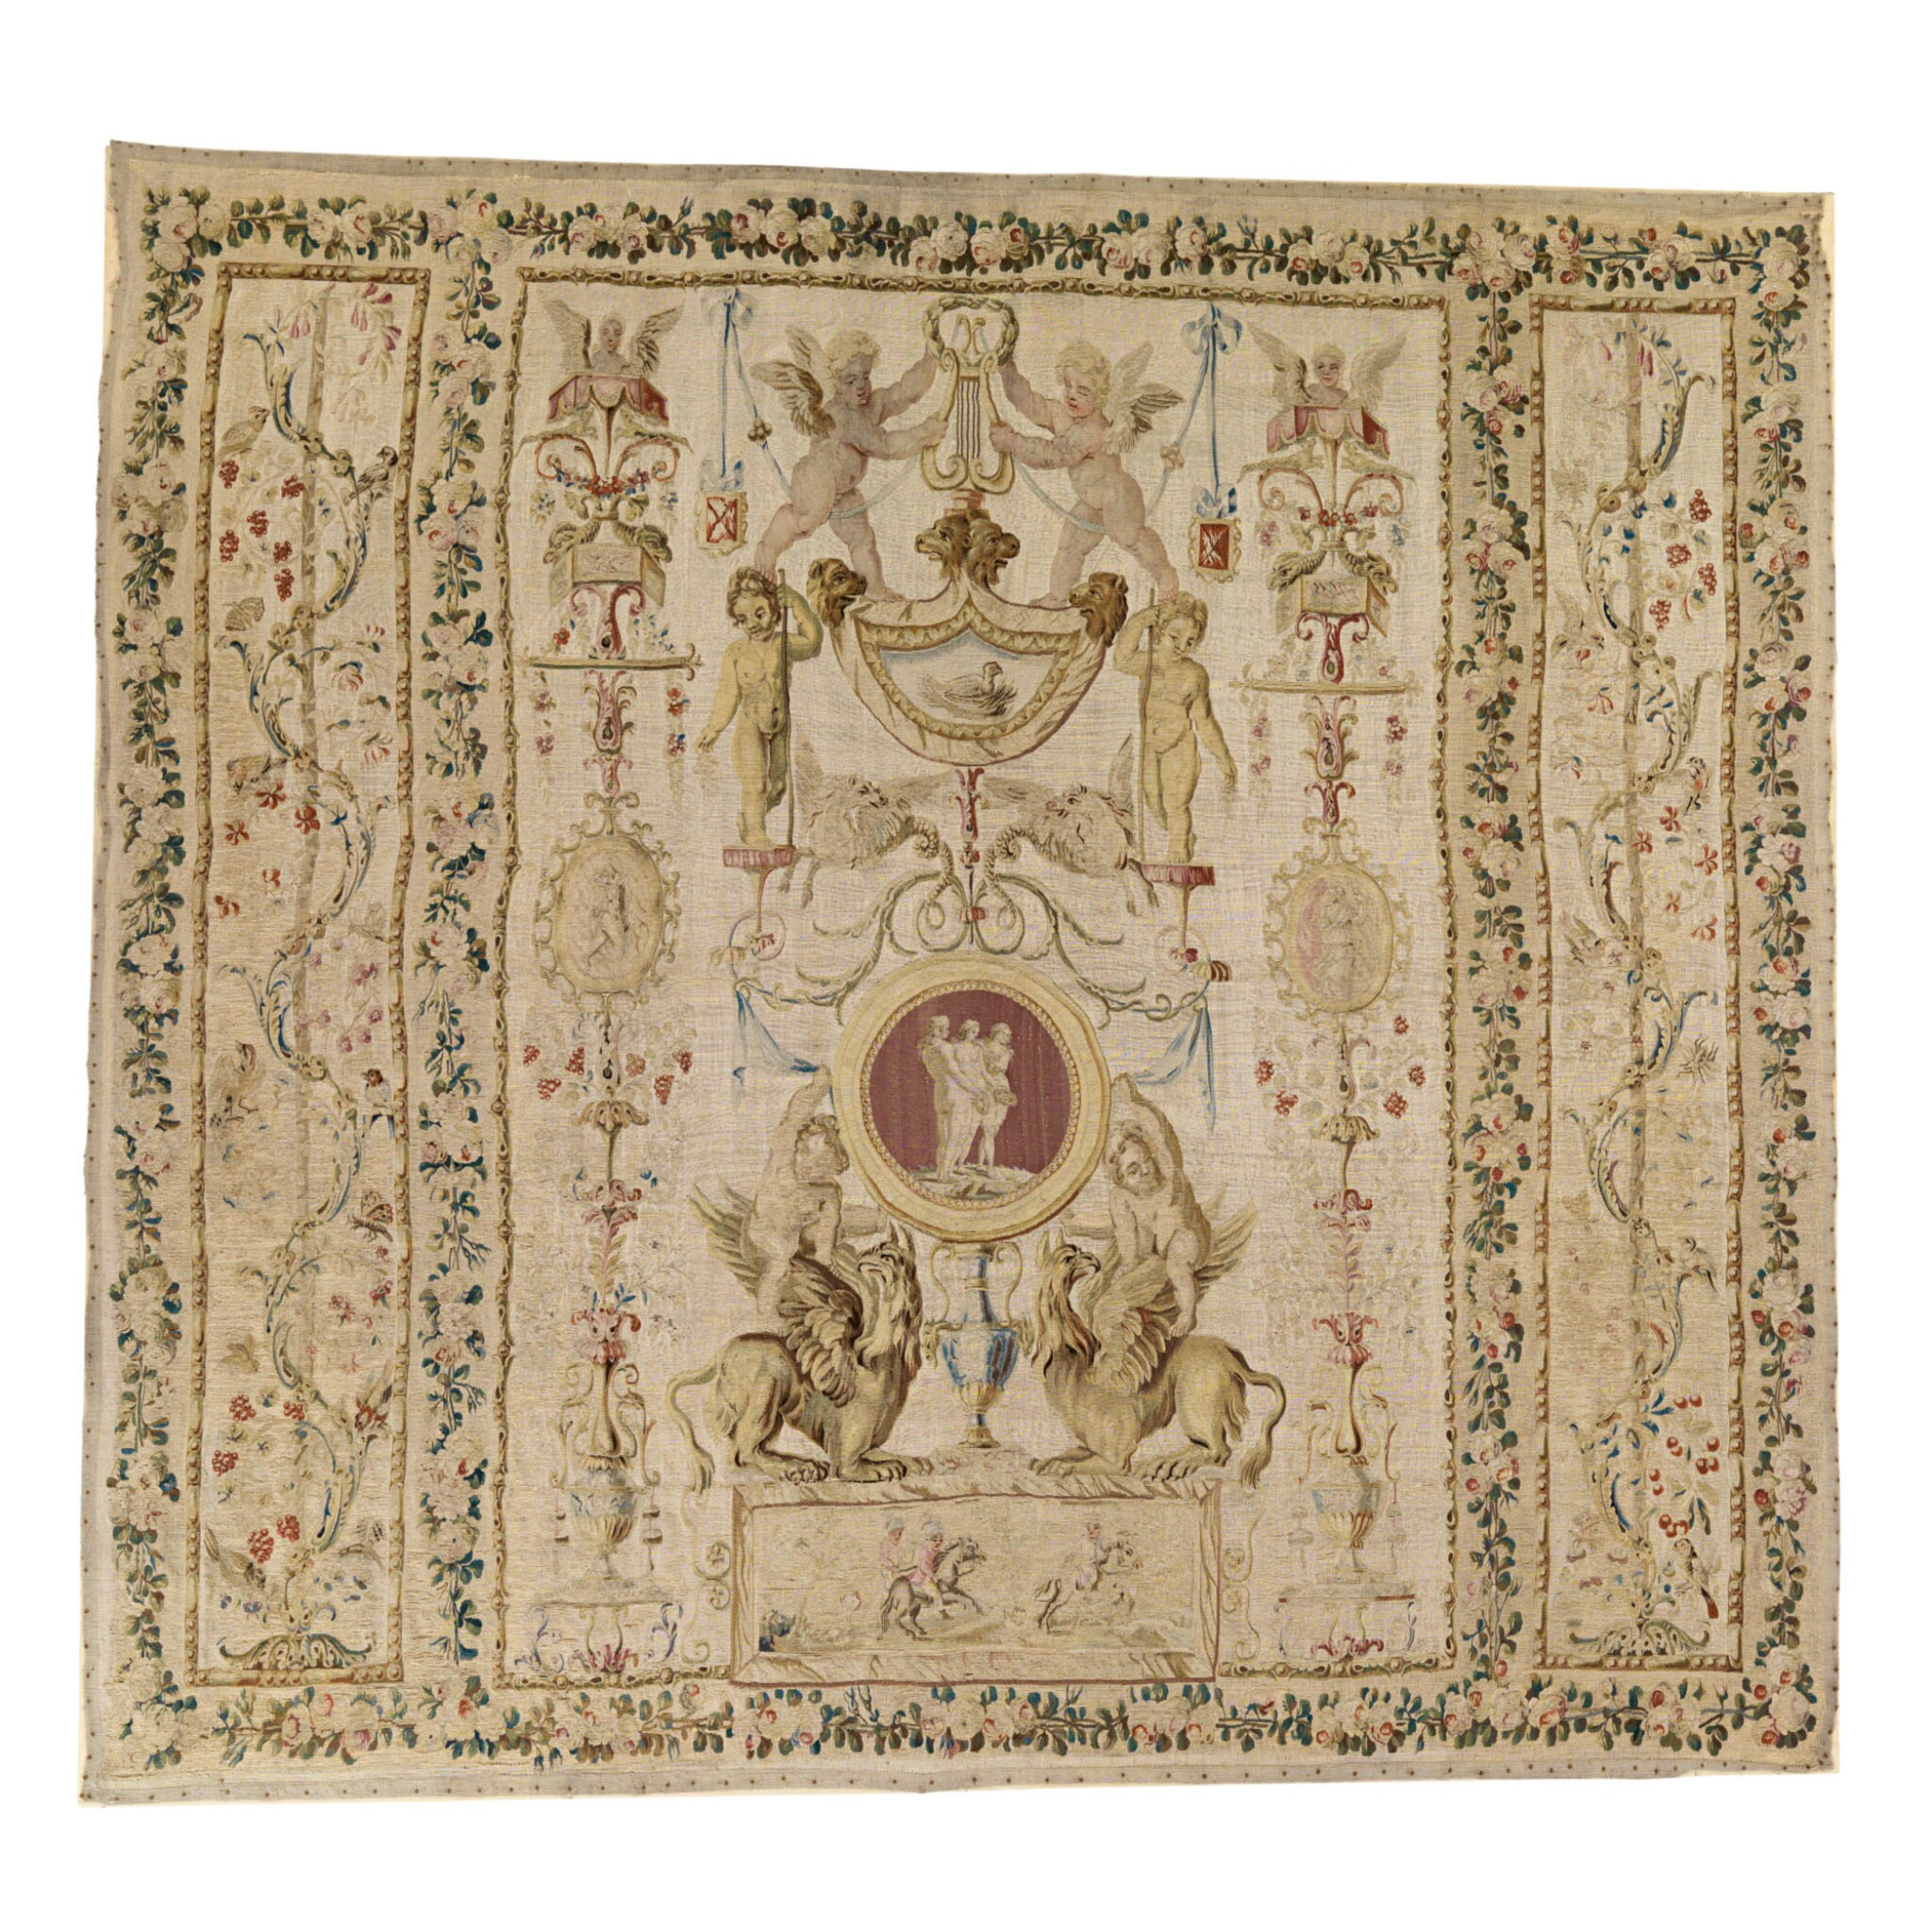 View full screen - View 1 of Lot 821. A LOUIS XVI ALLEGORICAL 'GROTESQUE' TAPESTRY, PROBABLY GOBELINS  LAST QUARTER 18TH CENTURY.